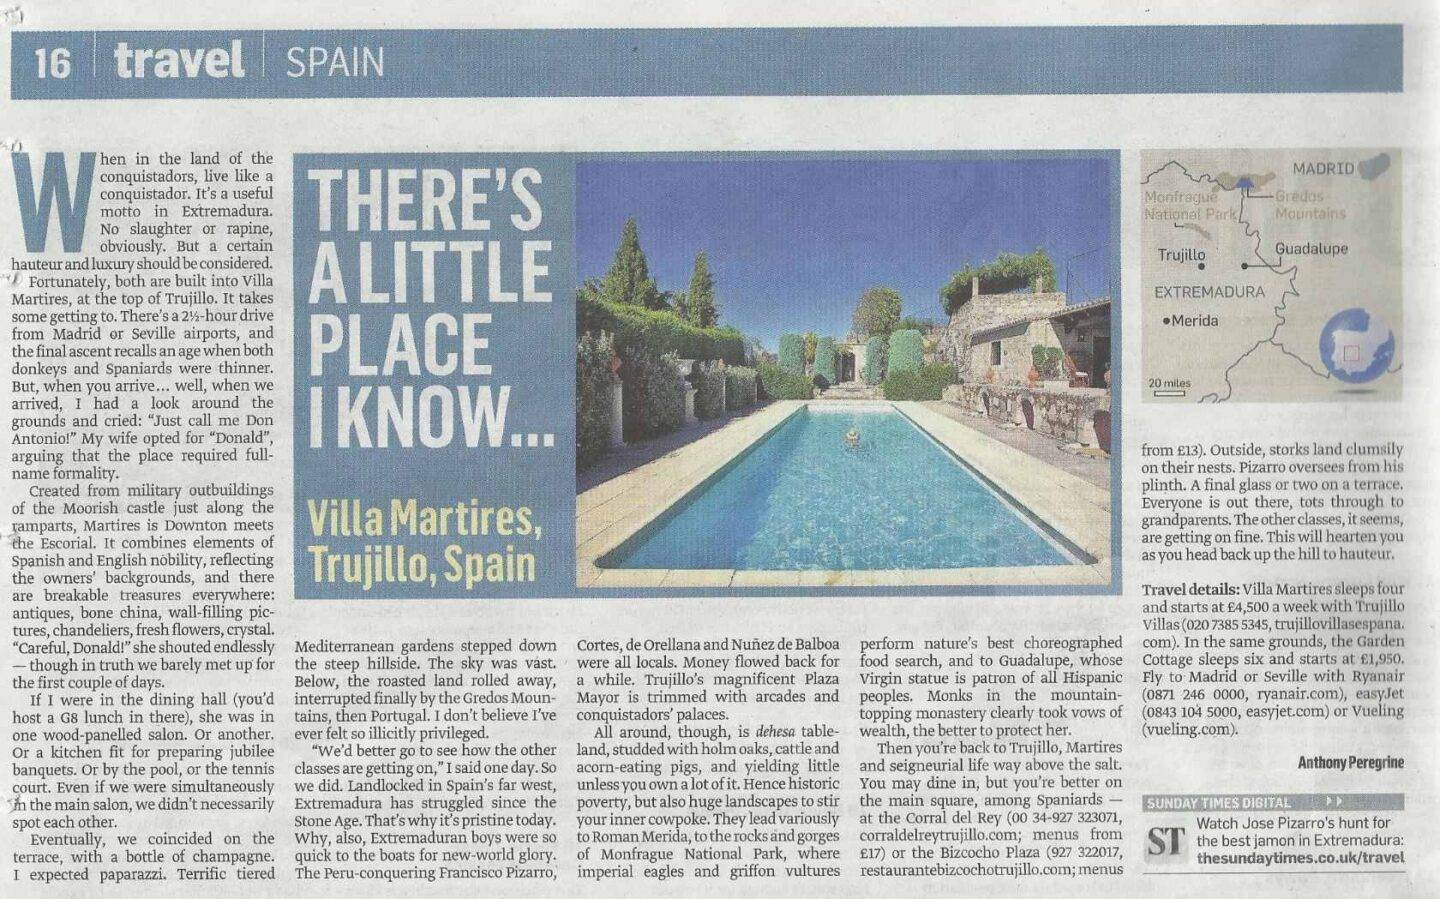 Sunday Times Travel, Villa Martires